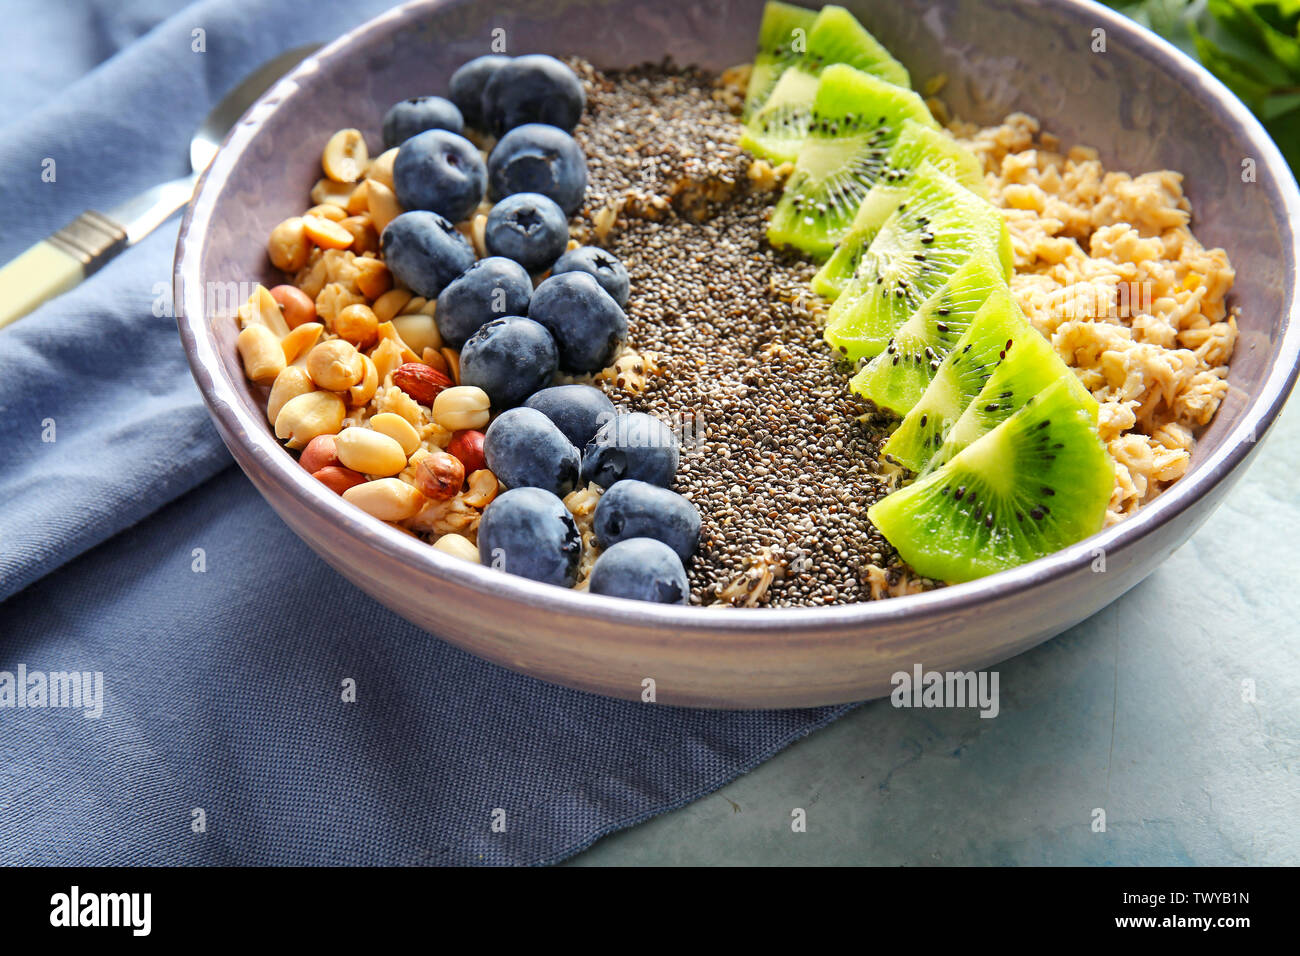 Bowl with tasty chia dessert on table - Stock Image